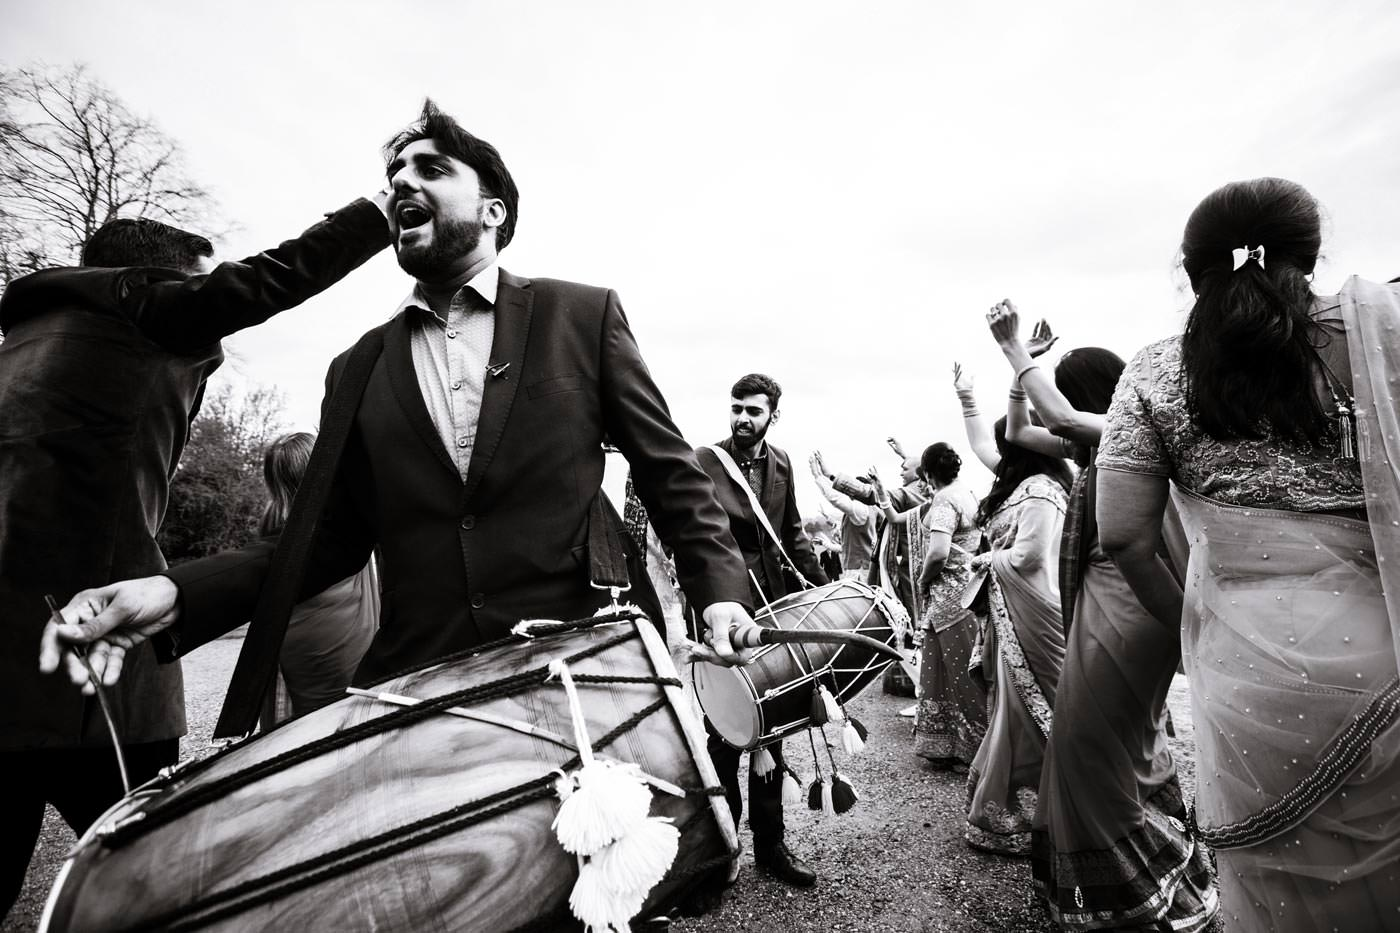 Dhol drummers, family and guests' procession ahead of a groom on a horse for his Hindu wedding at Ragley Hall